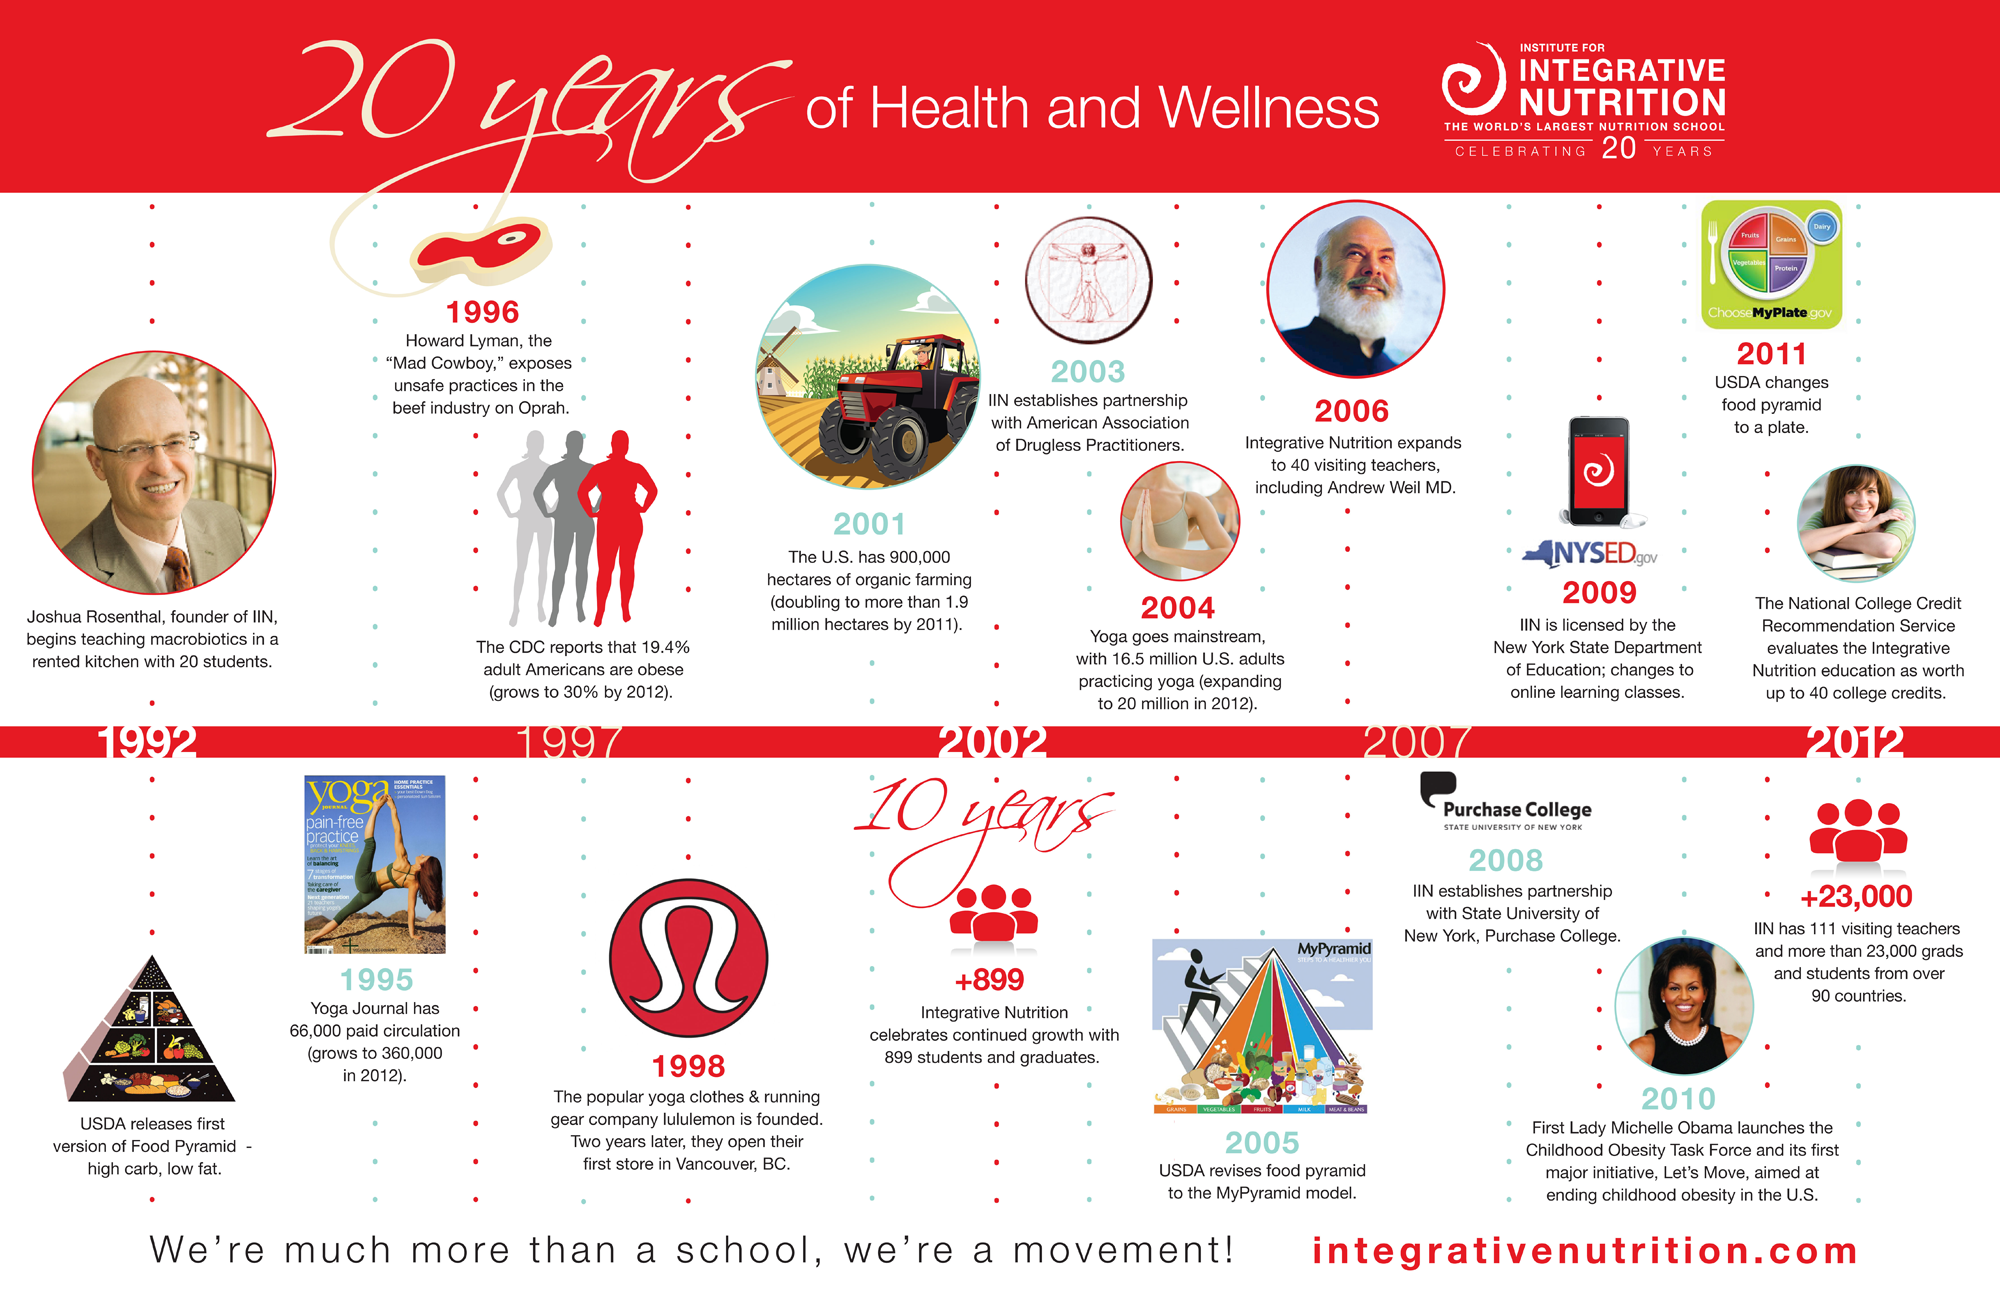 IIN 20thAnniversary InfoGraphic 2012 Half Year in Review